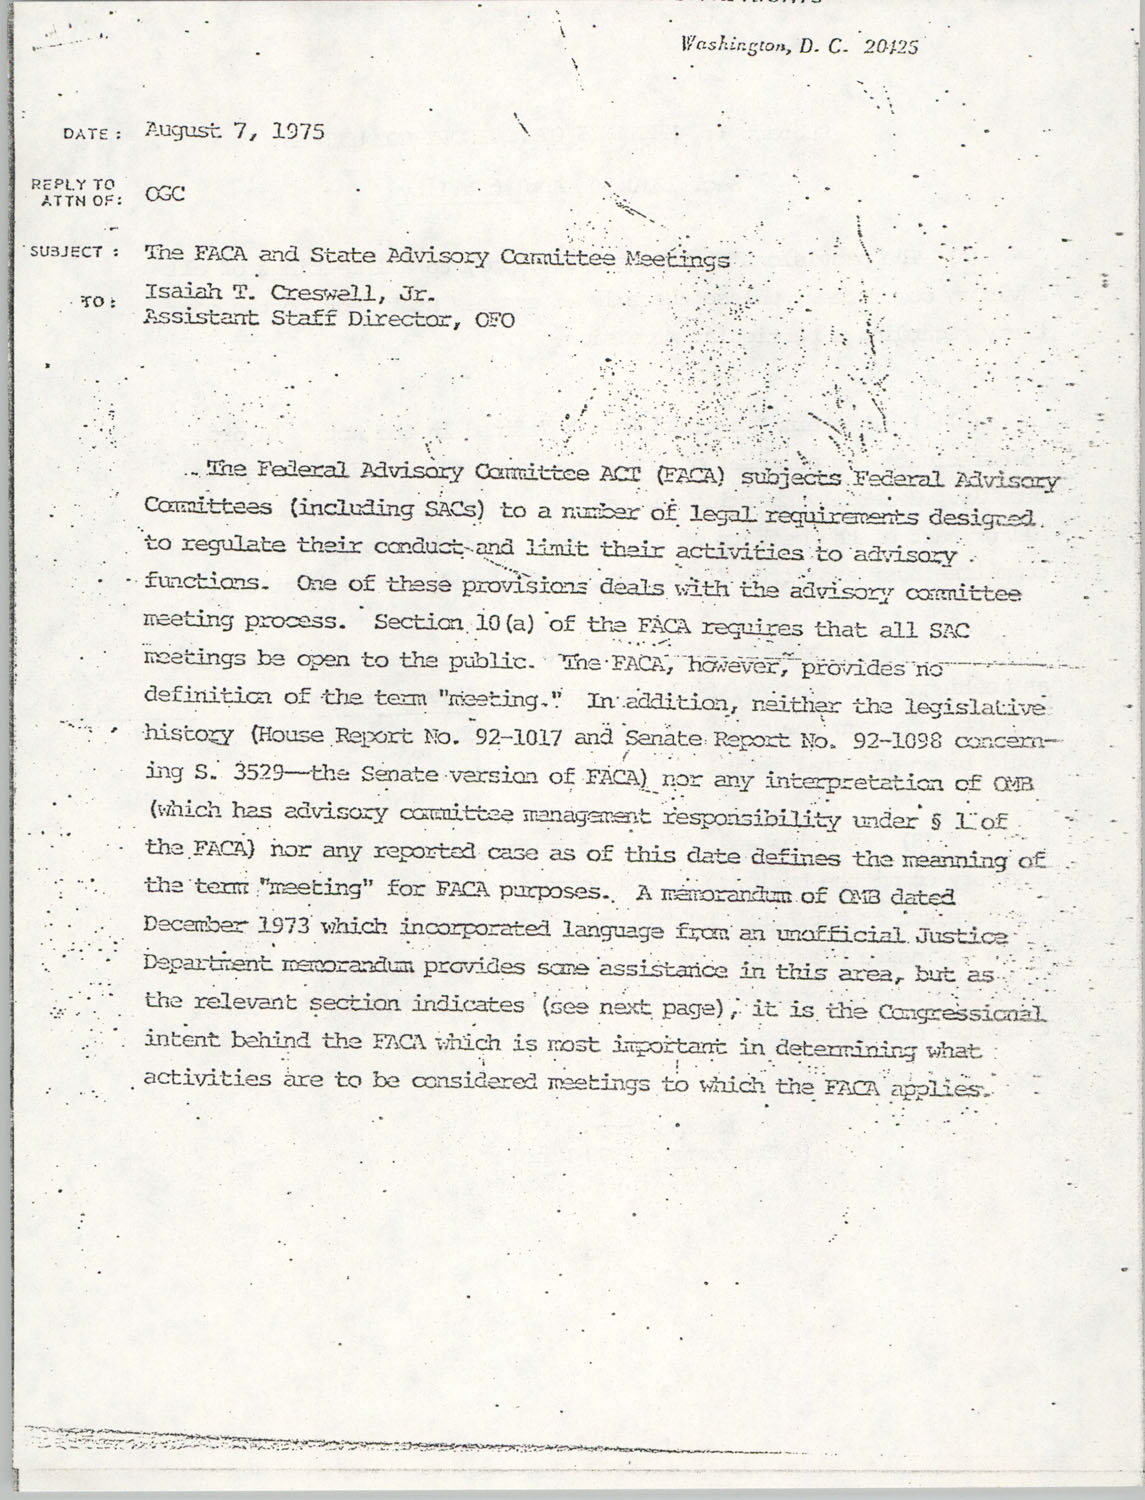 Memorandum from Lawrence B. Glick to Isaiah T. Creswell, August 7, 1975, Page 1